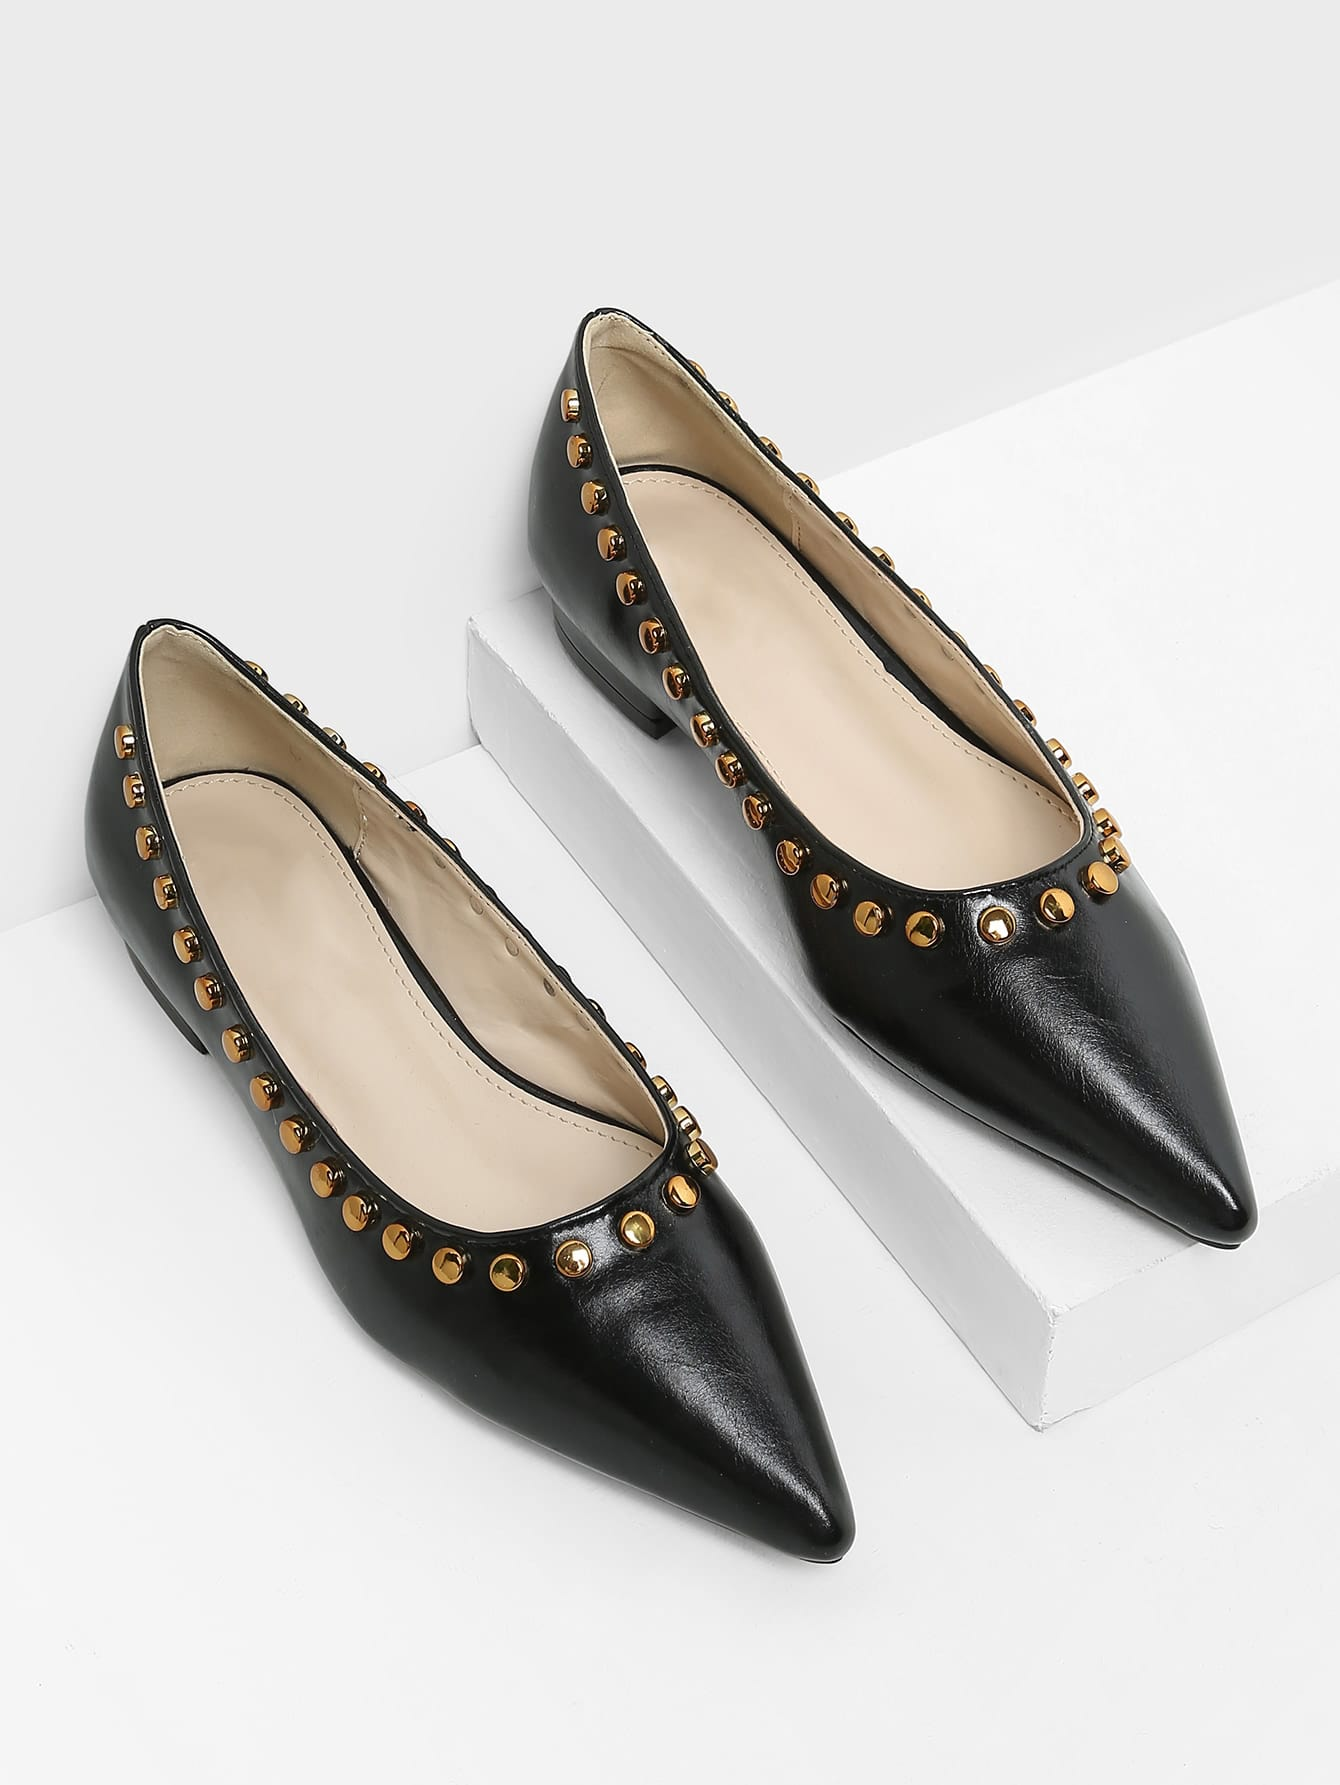 Studded Detail Pointed Toe Flats майки спортивные diamond майка спортивная